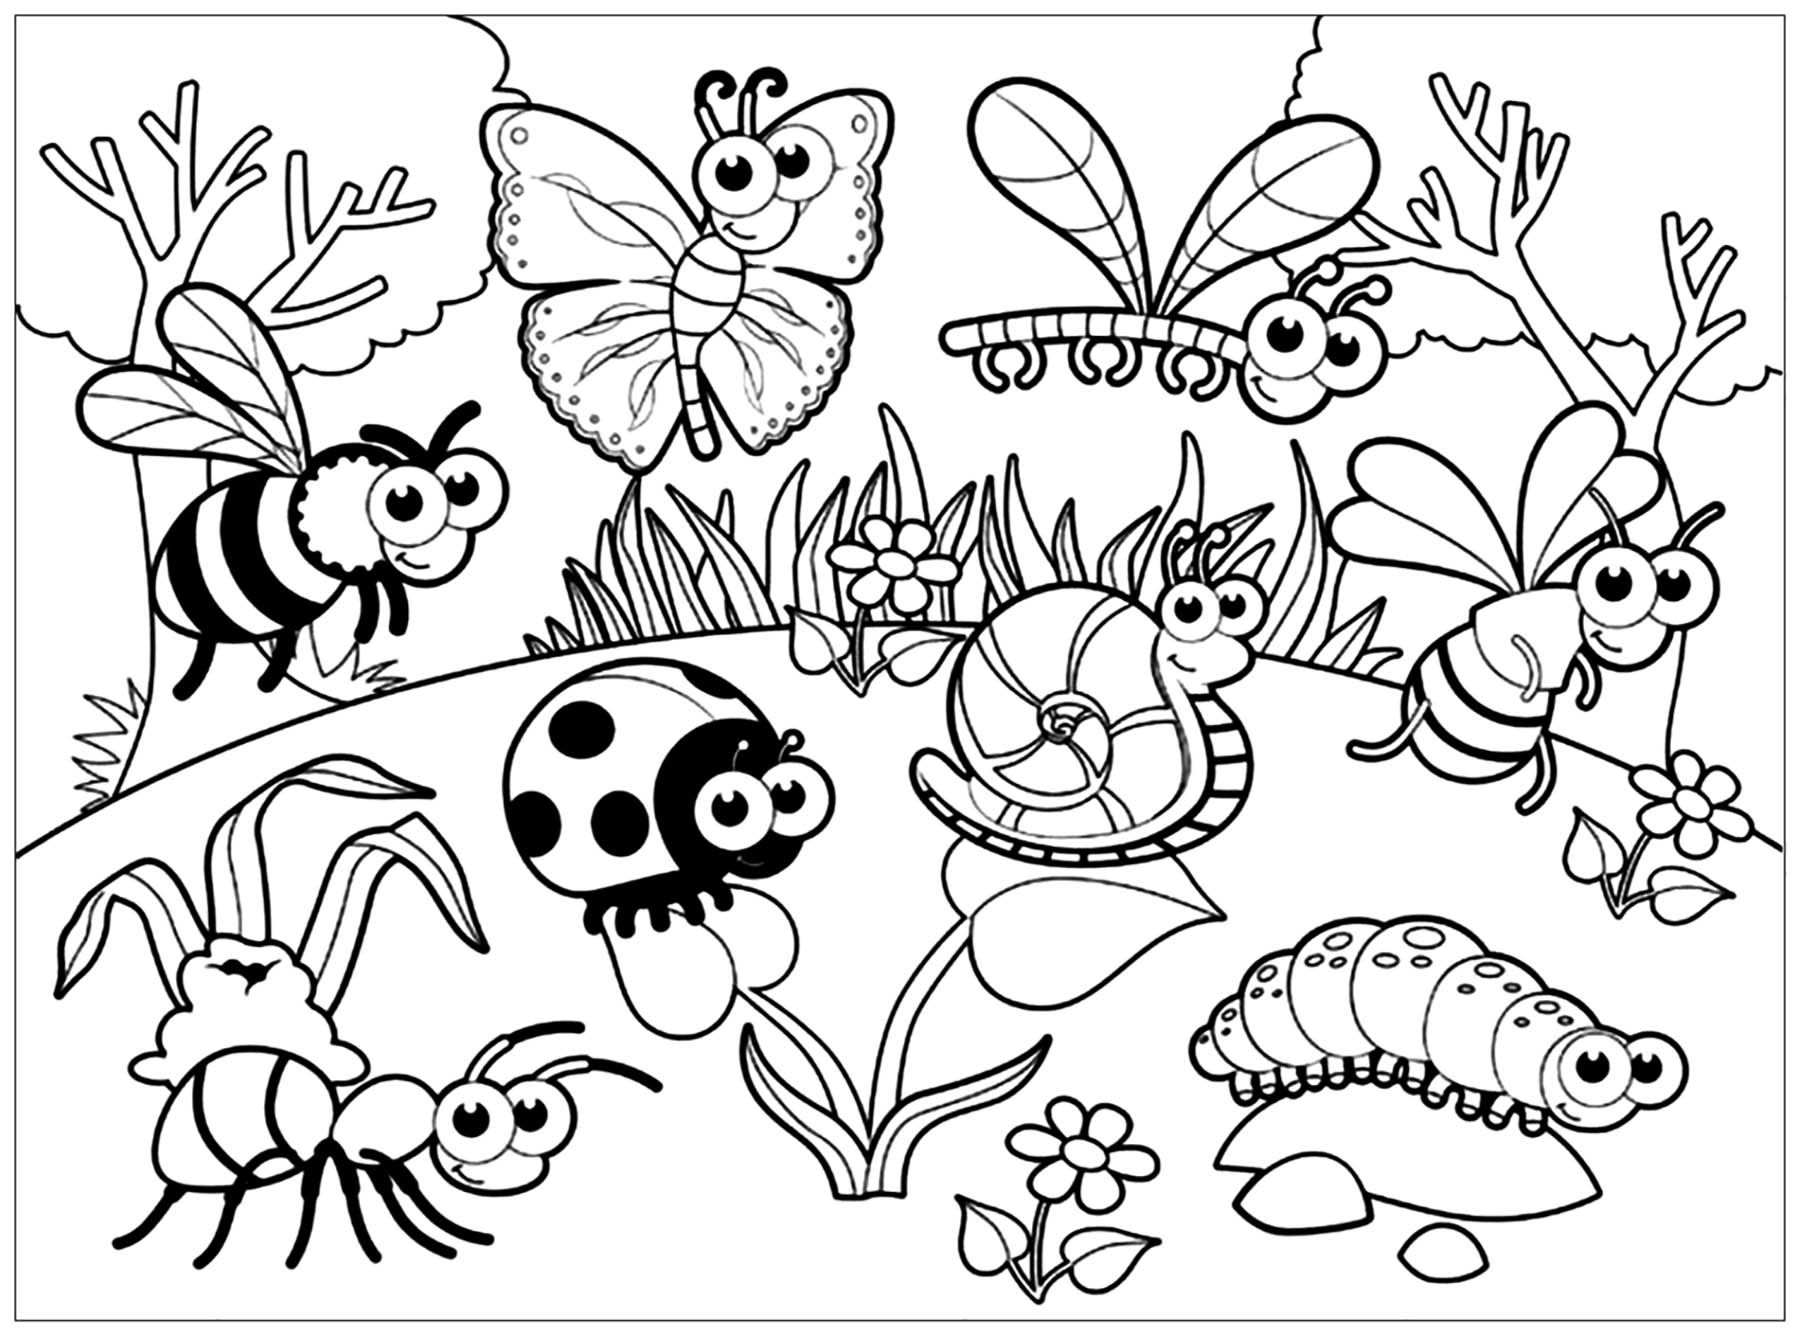 Tremendous Colouring Pages Insects Insect Coloring Pages Cat Coloring Page Bug Coloring Pages